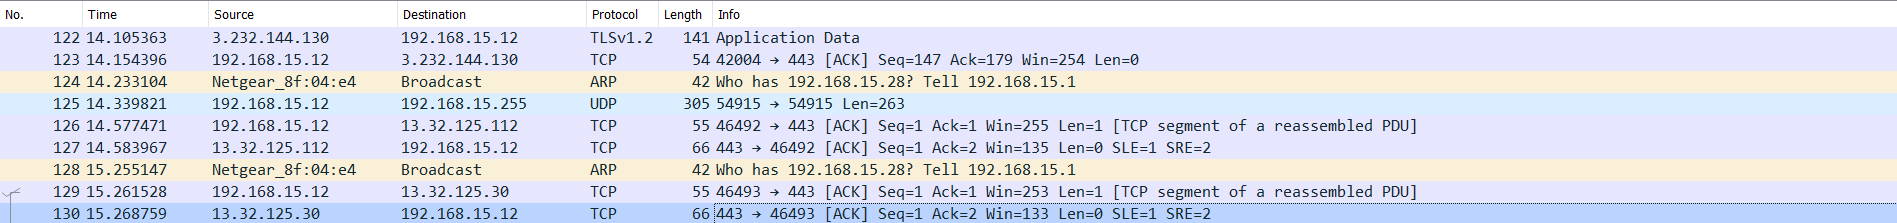 Wireshark results table